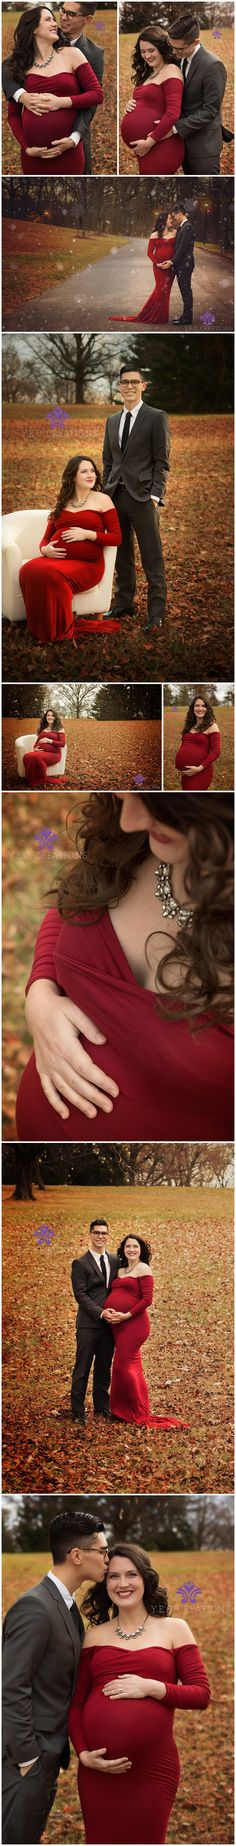 Maternity shoot by Y.E.C. Creations  Red maternity gown. Outdoor winter maternity shoot